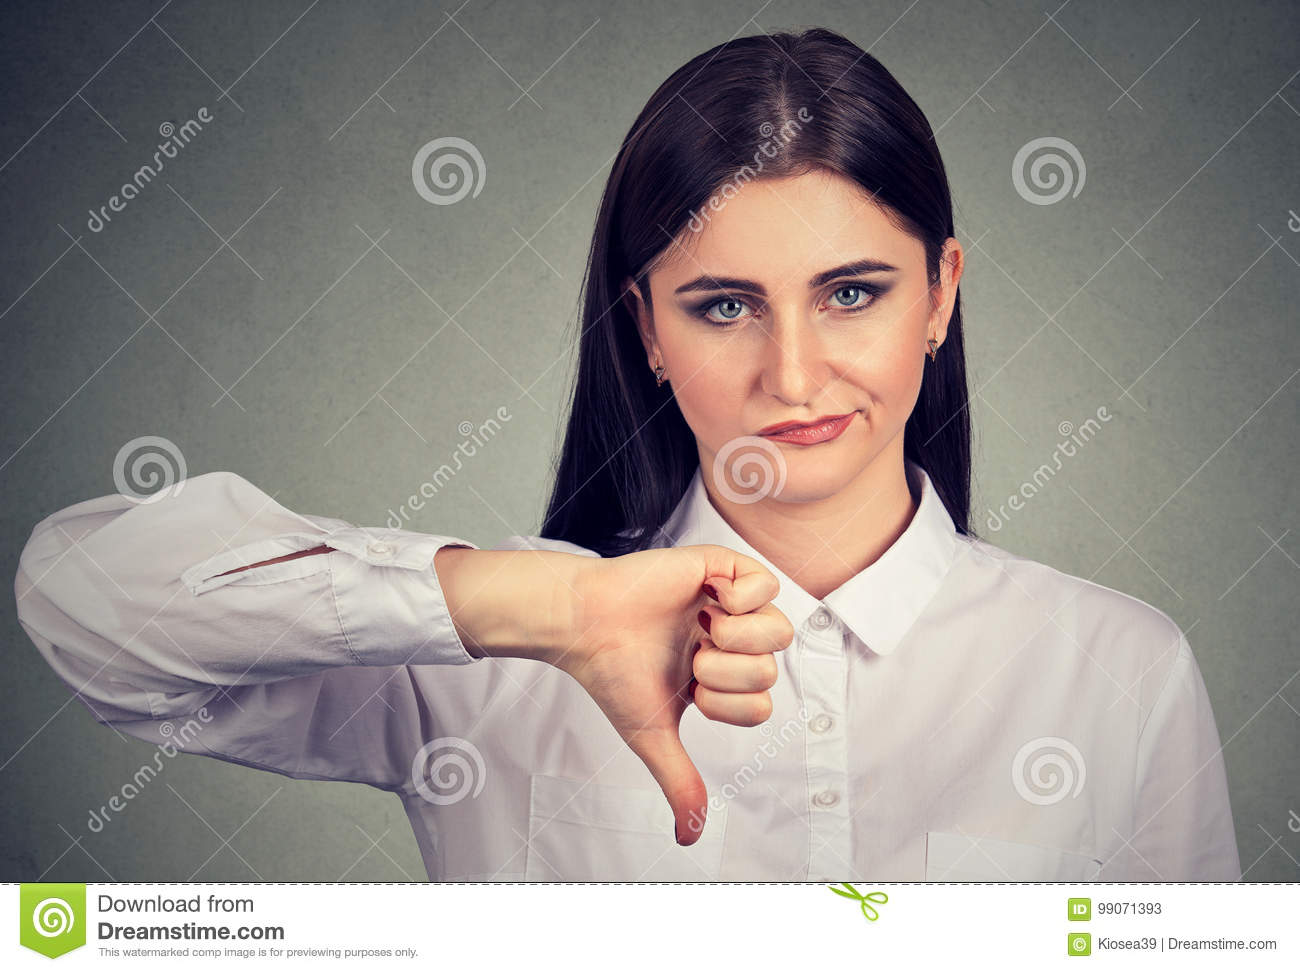 Angry woman giving thumbs down gesture